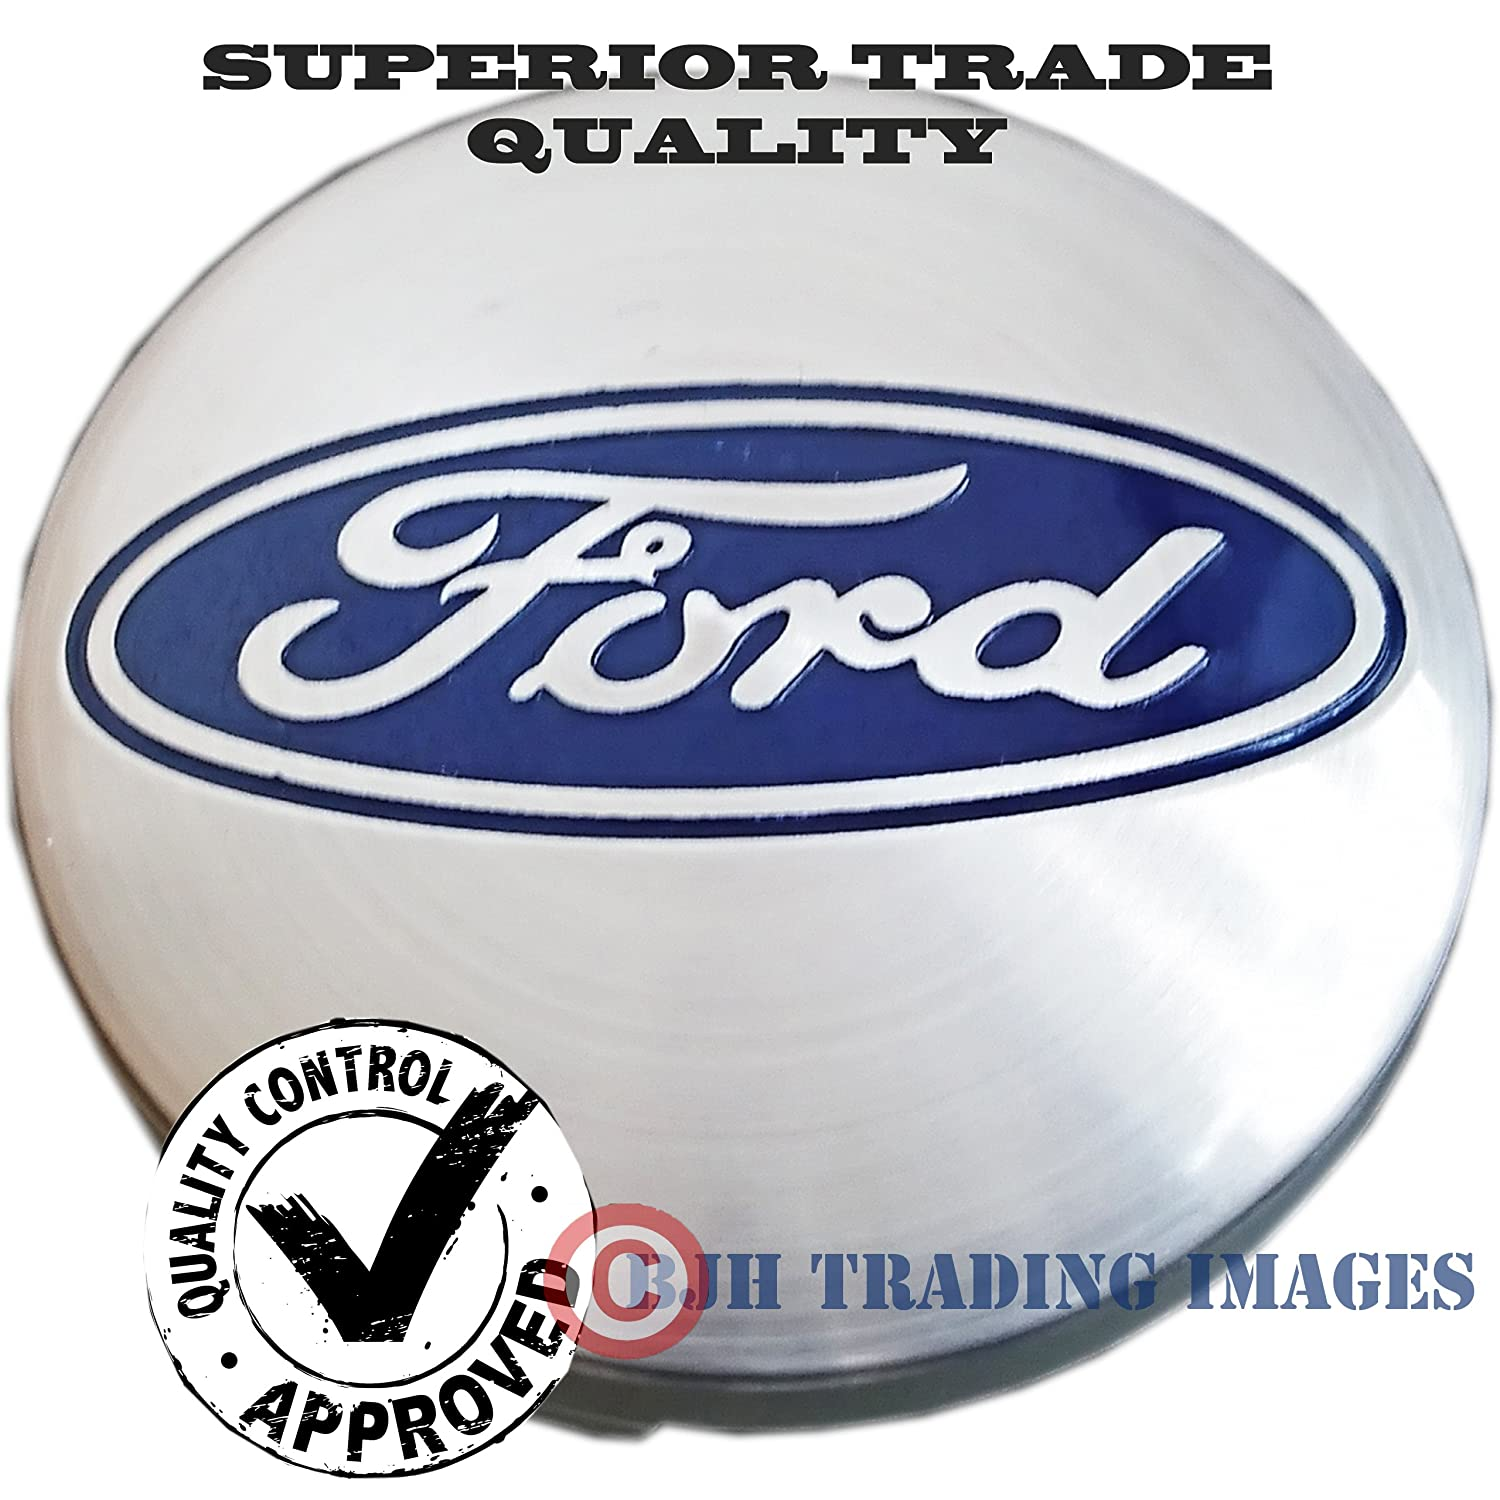 GENUINE ALLOY WHEEL CENTRE CAP with GRIFFIN NEW from LSC 13362858